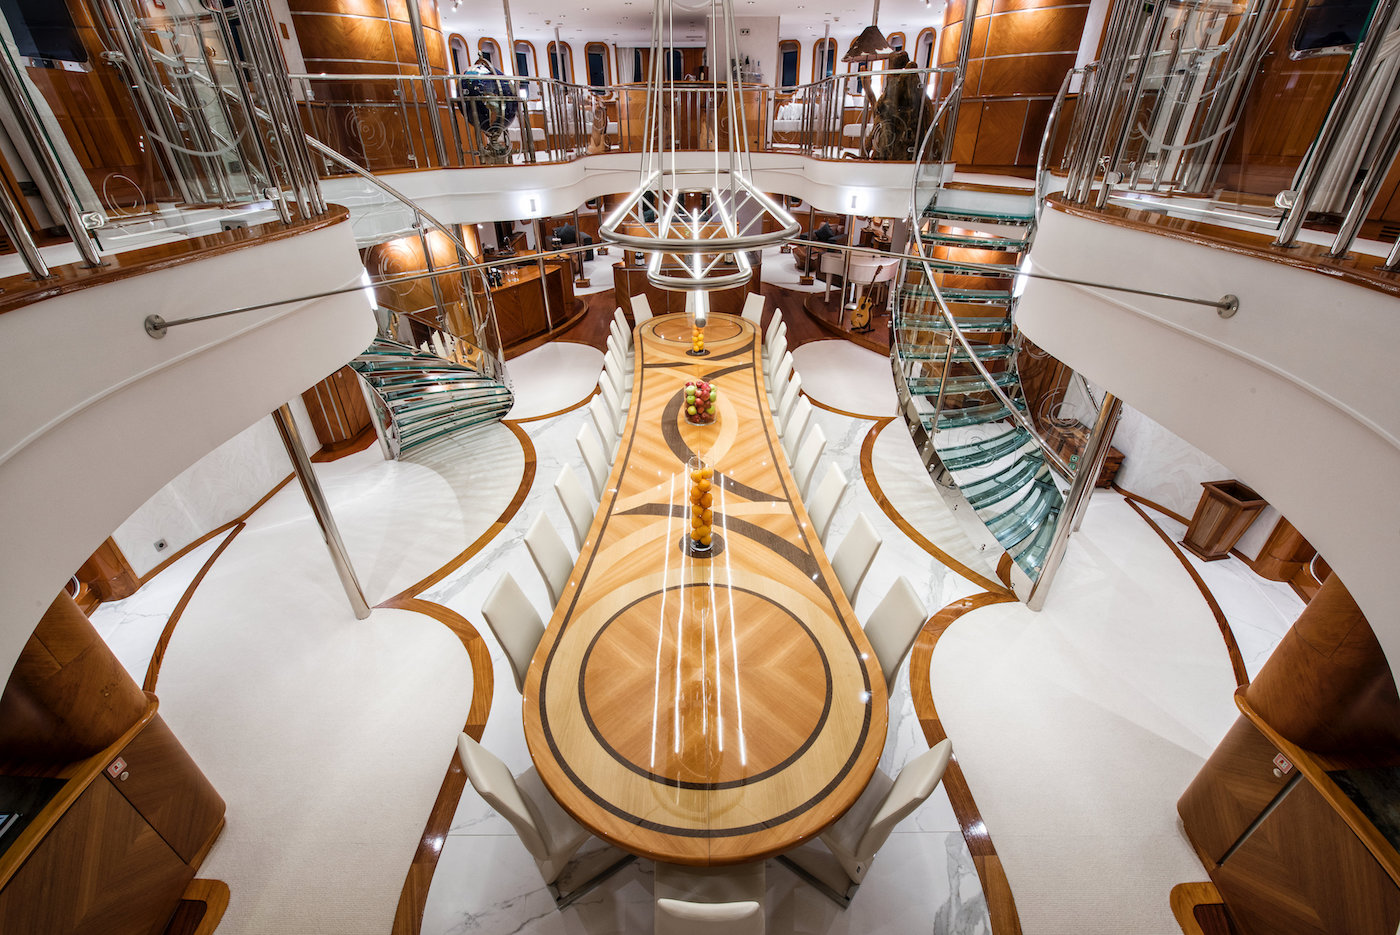 Dining Table From Above